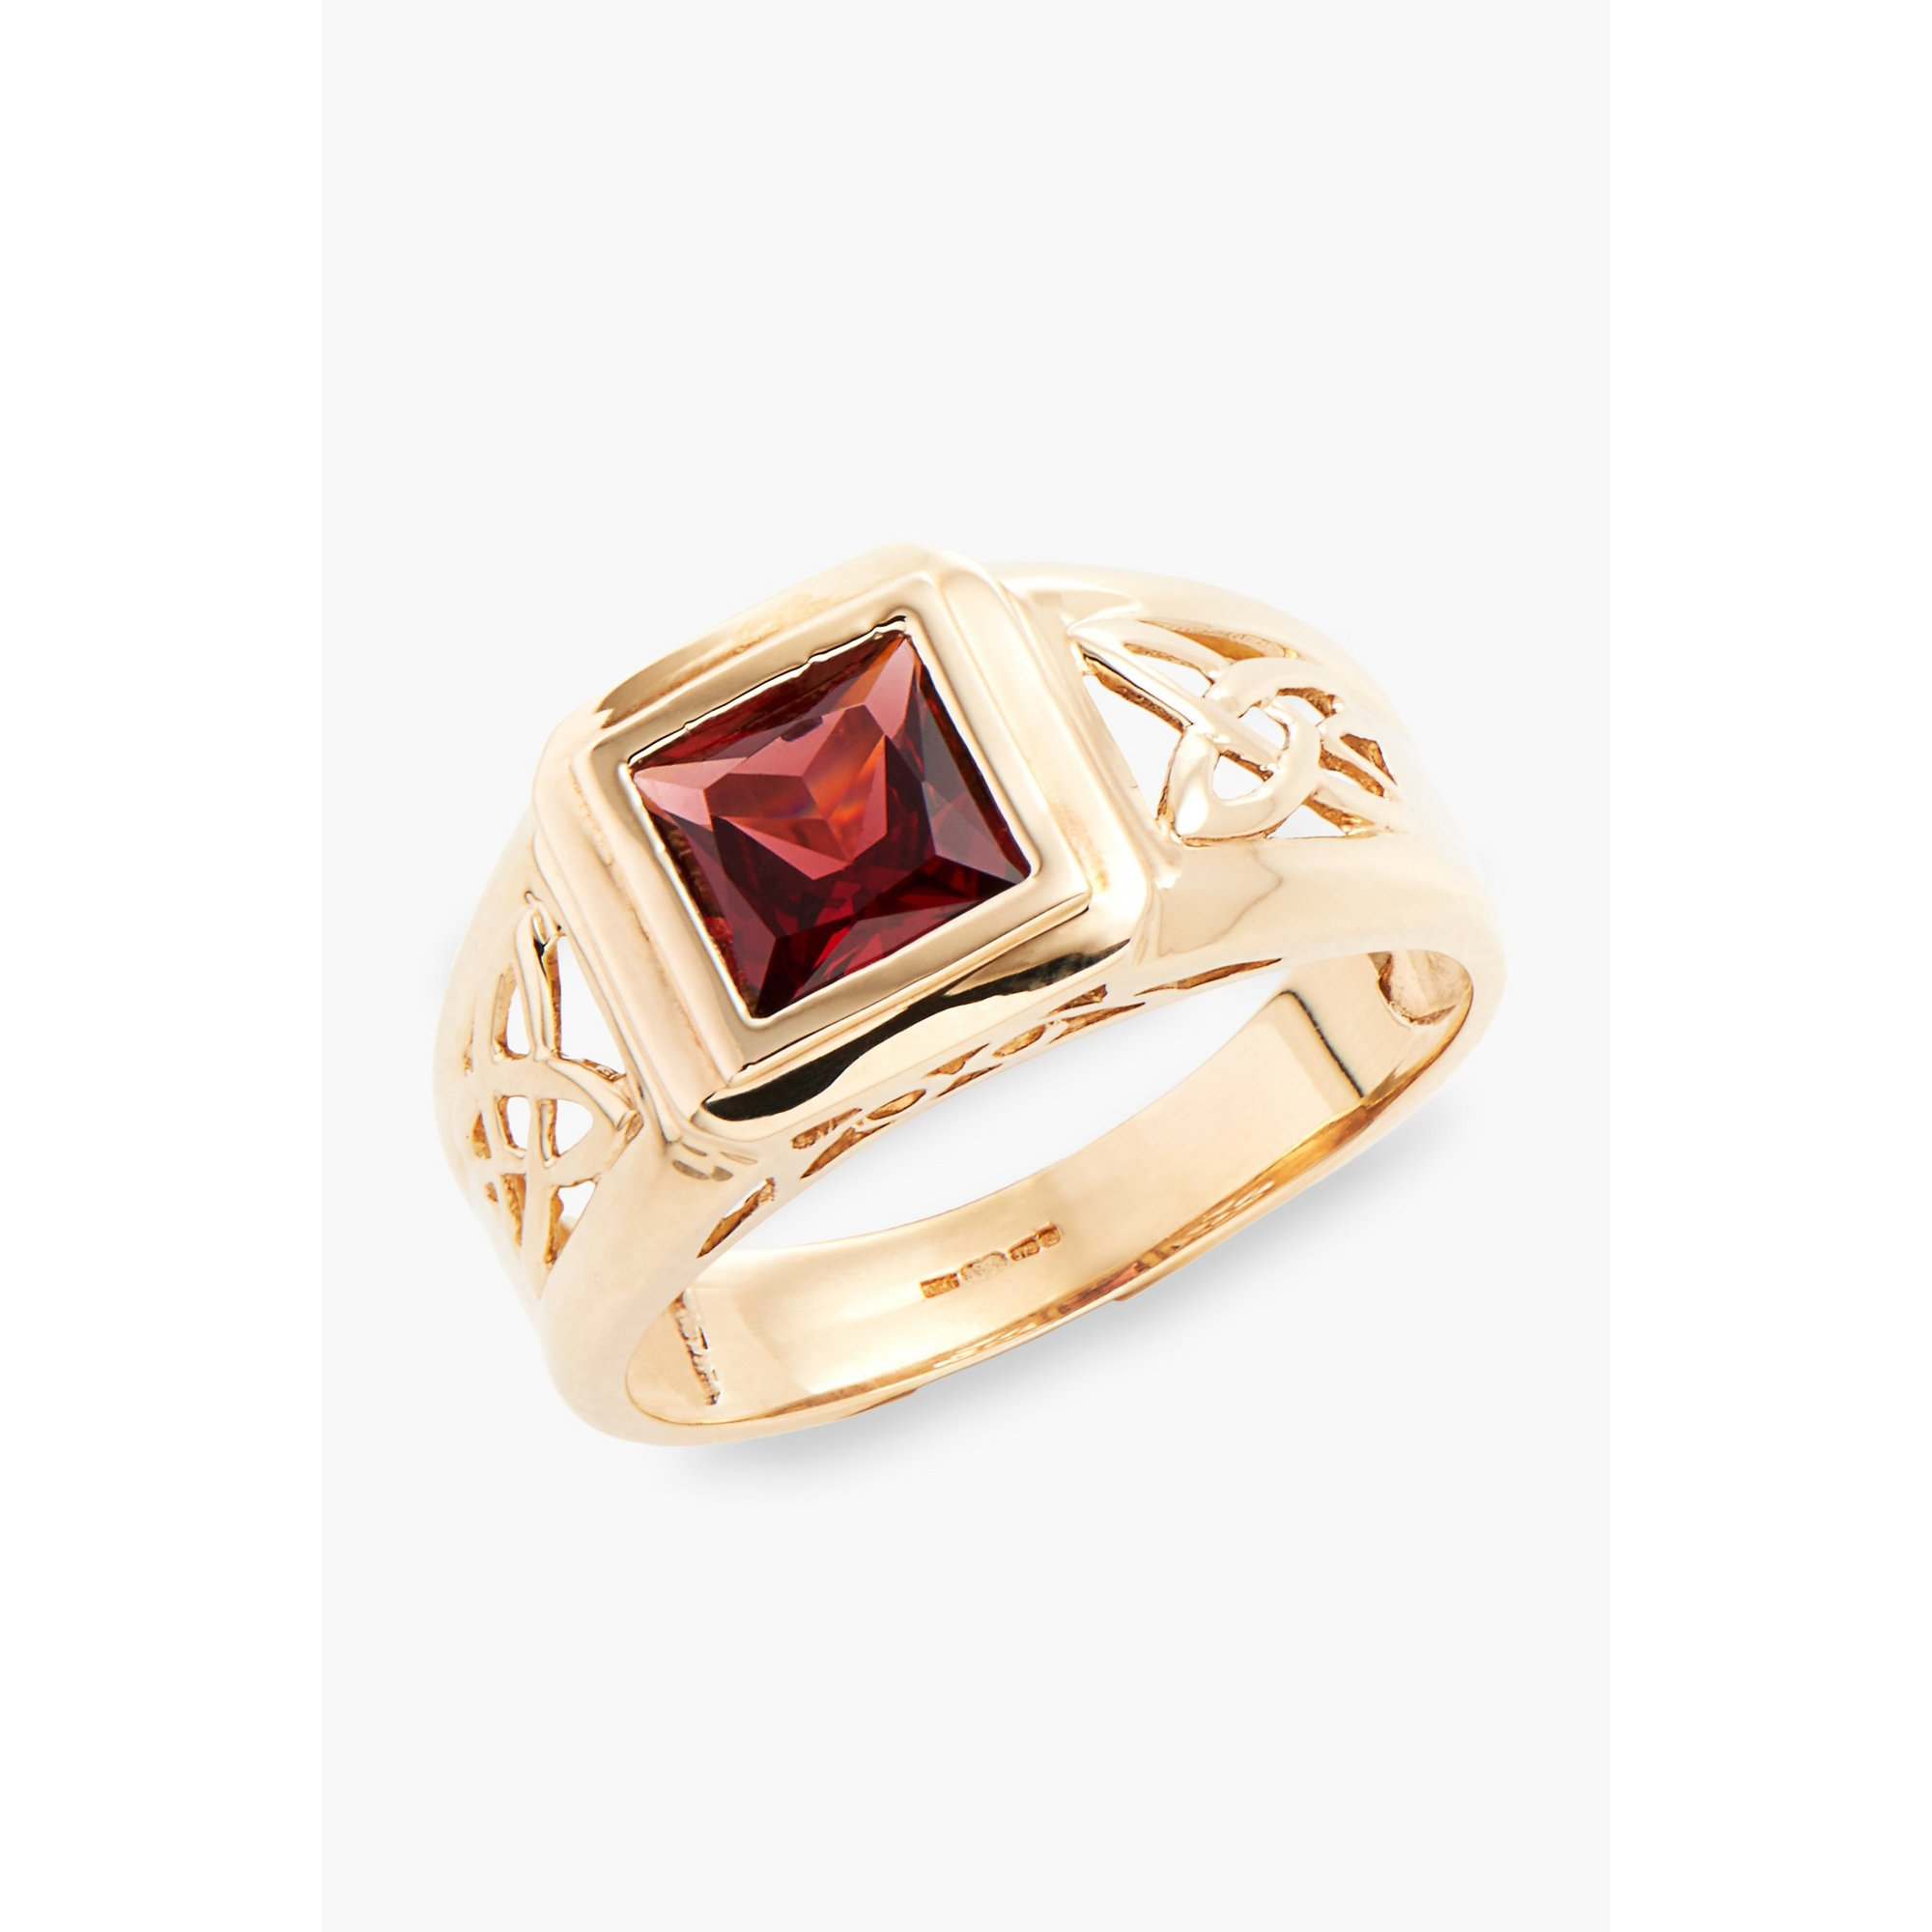 Image of 9ct Gold Celtic Style Garnet Ring